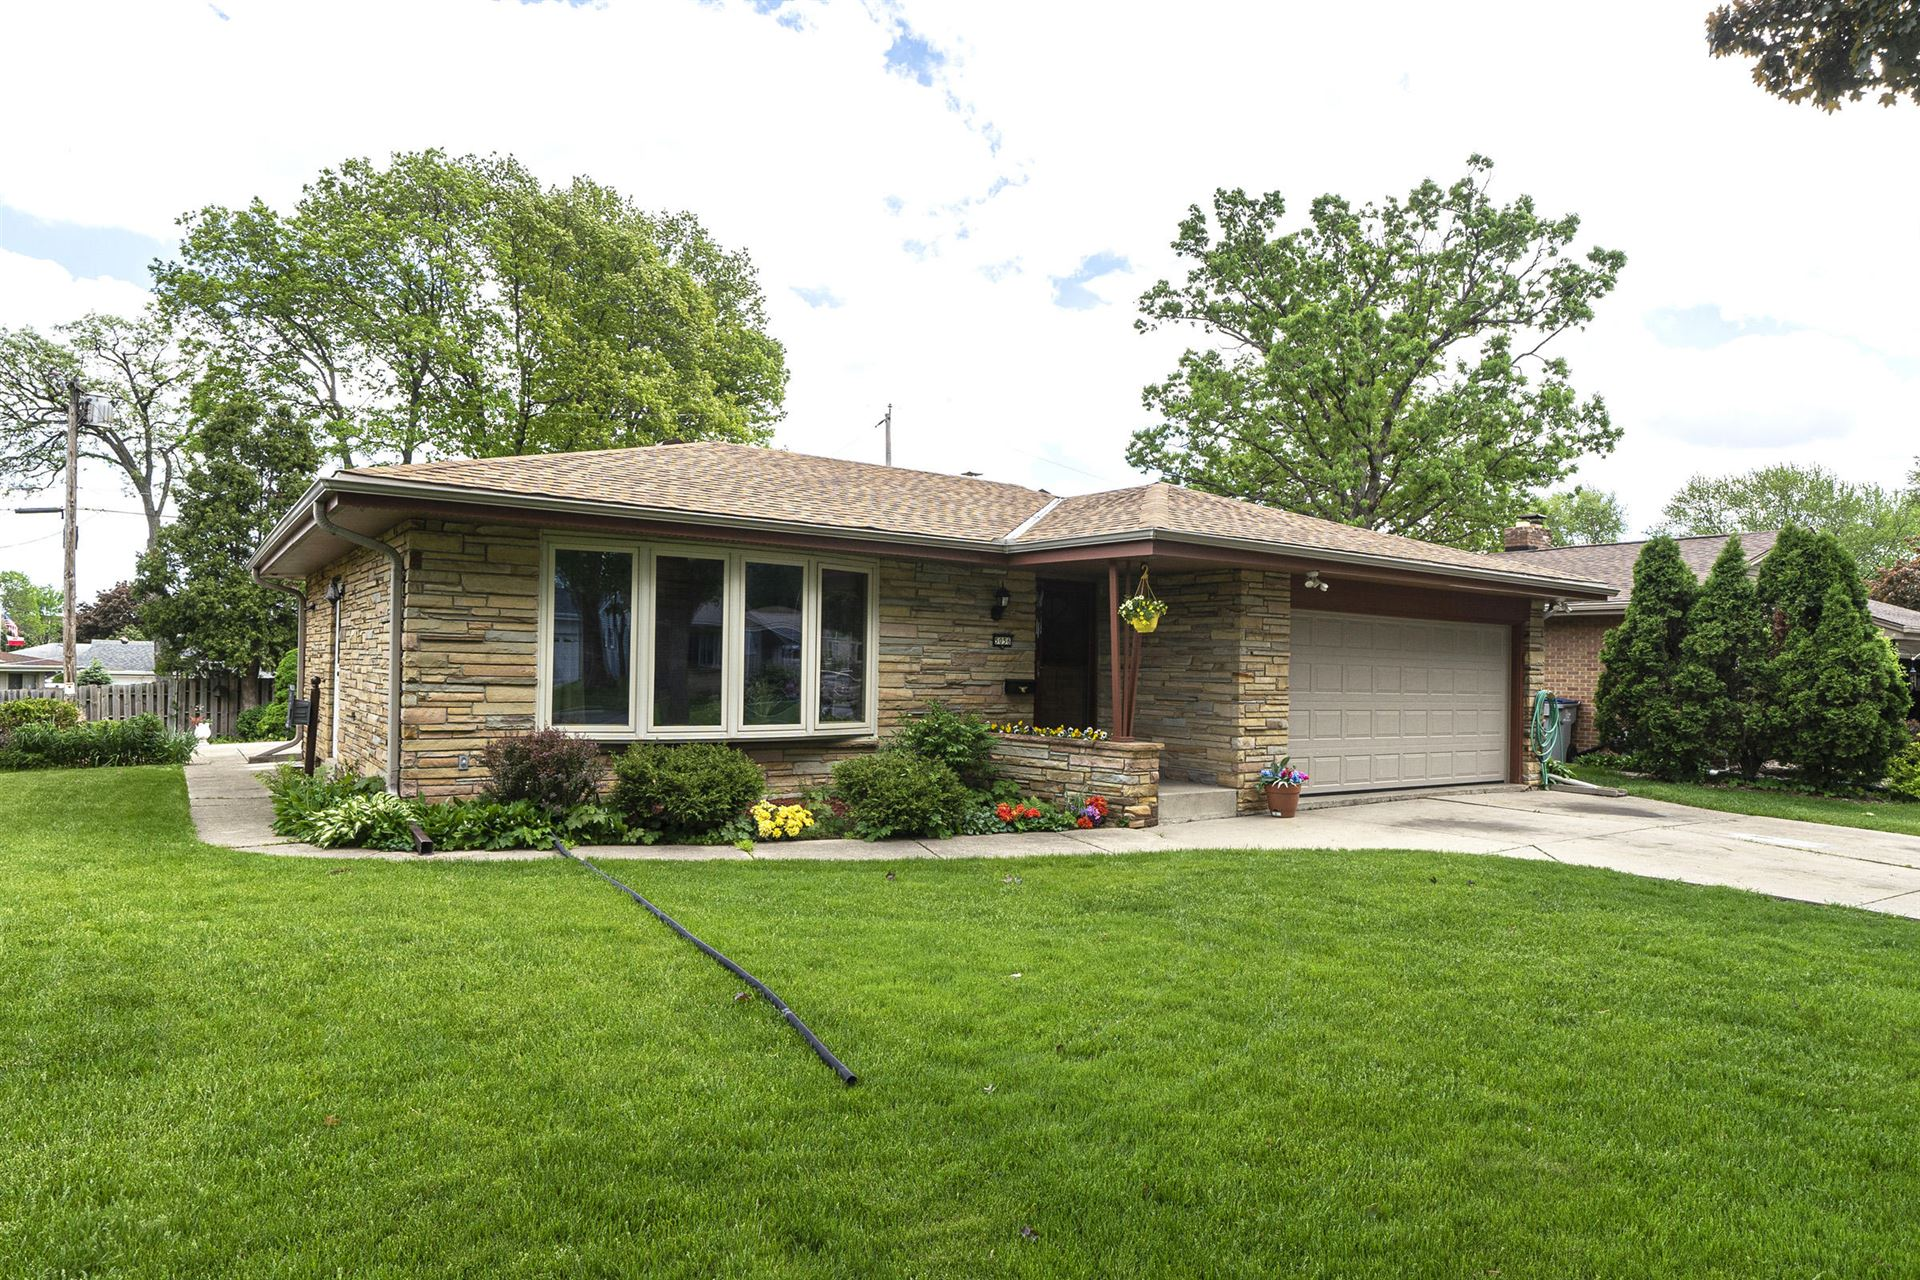 5056 S 19th St, Milwaukee, WI 53221 - #: 1691584